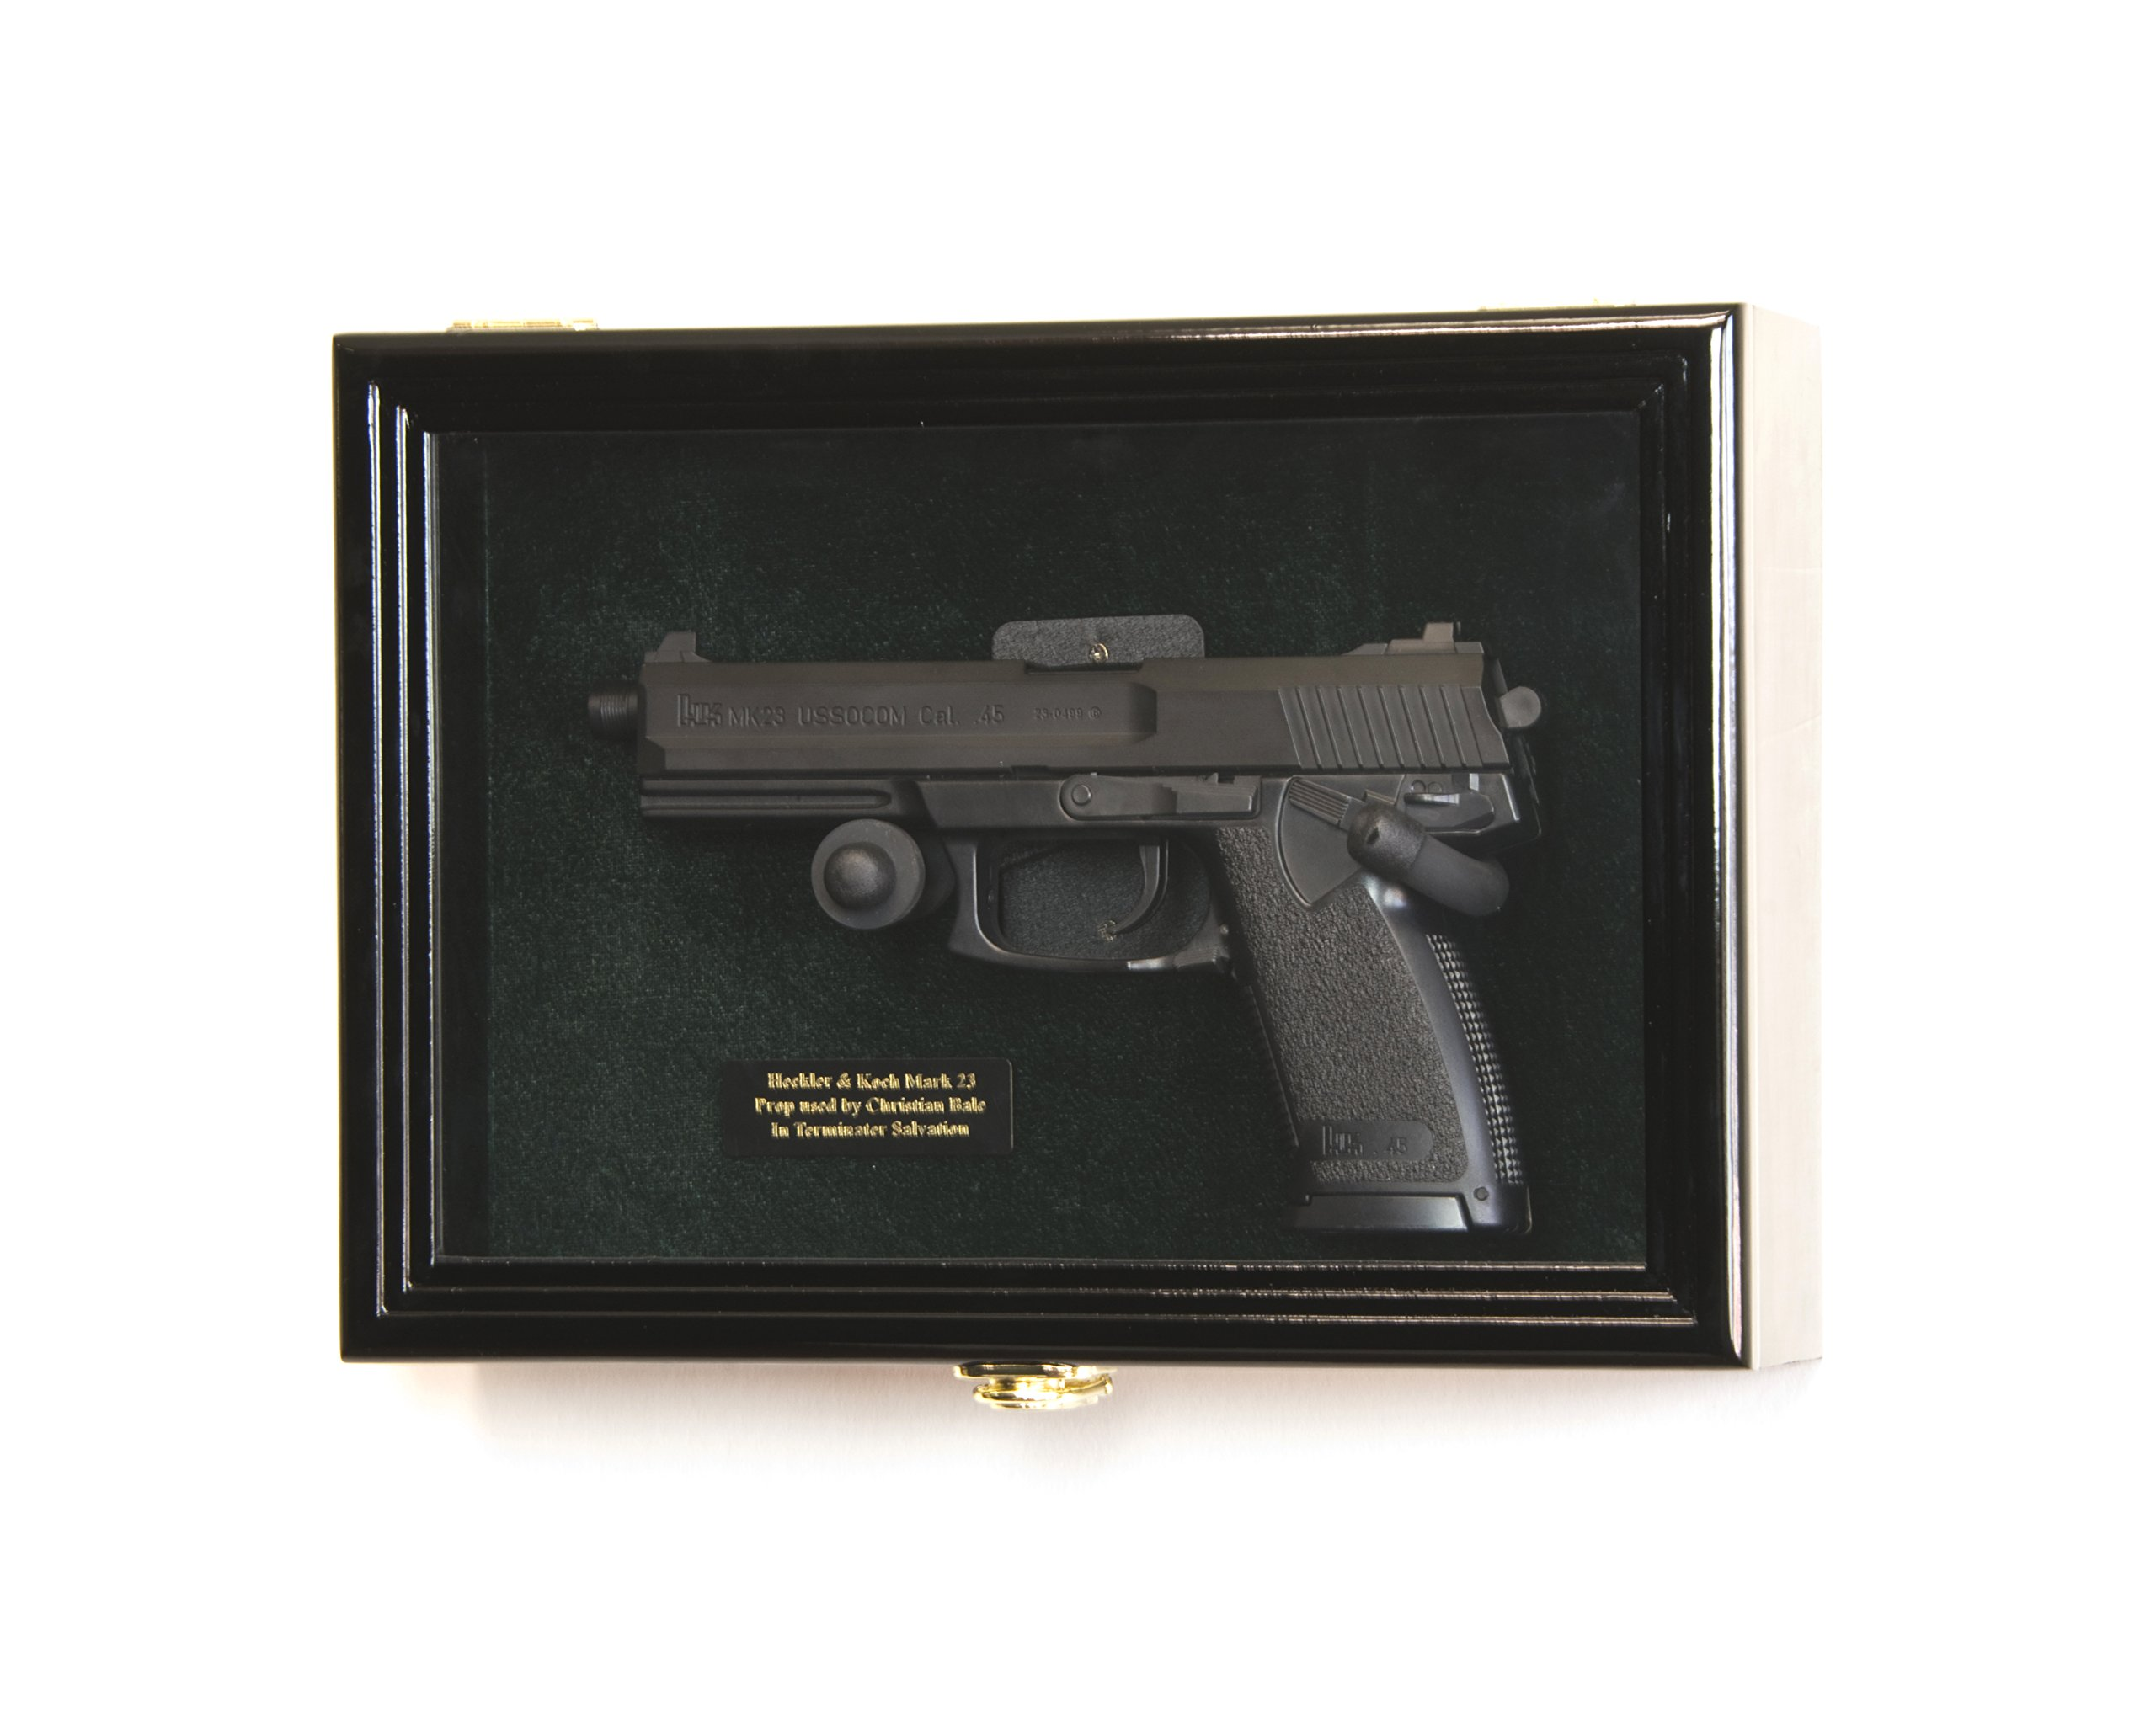 Single Pistol Display Case Wall Mount Solid Hardwood Cabinet (Black Finish, Green Felt Background) by sfDisplay.com, Factory Direct Display Cases